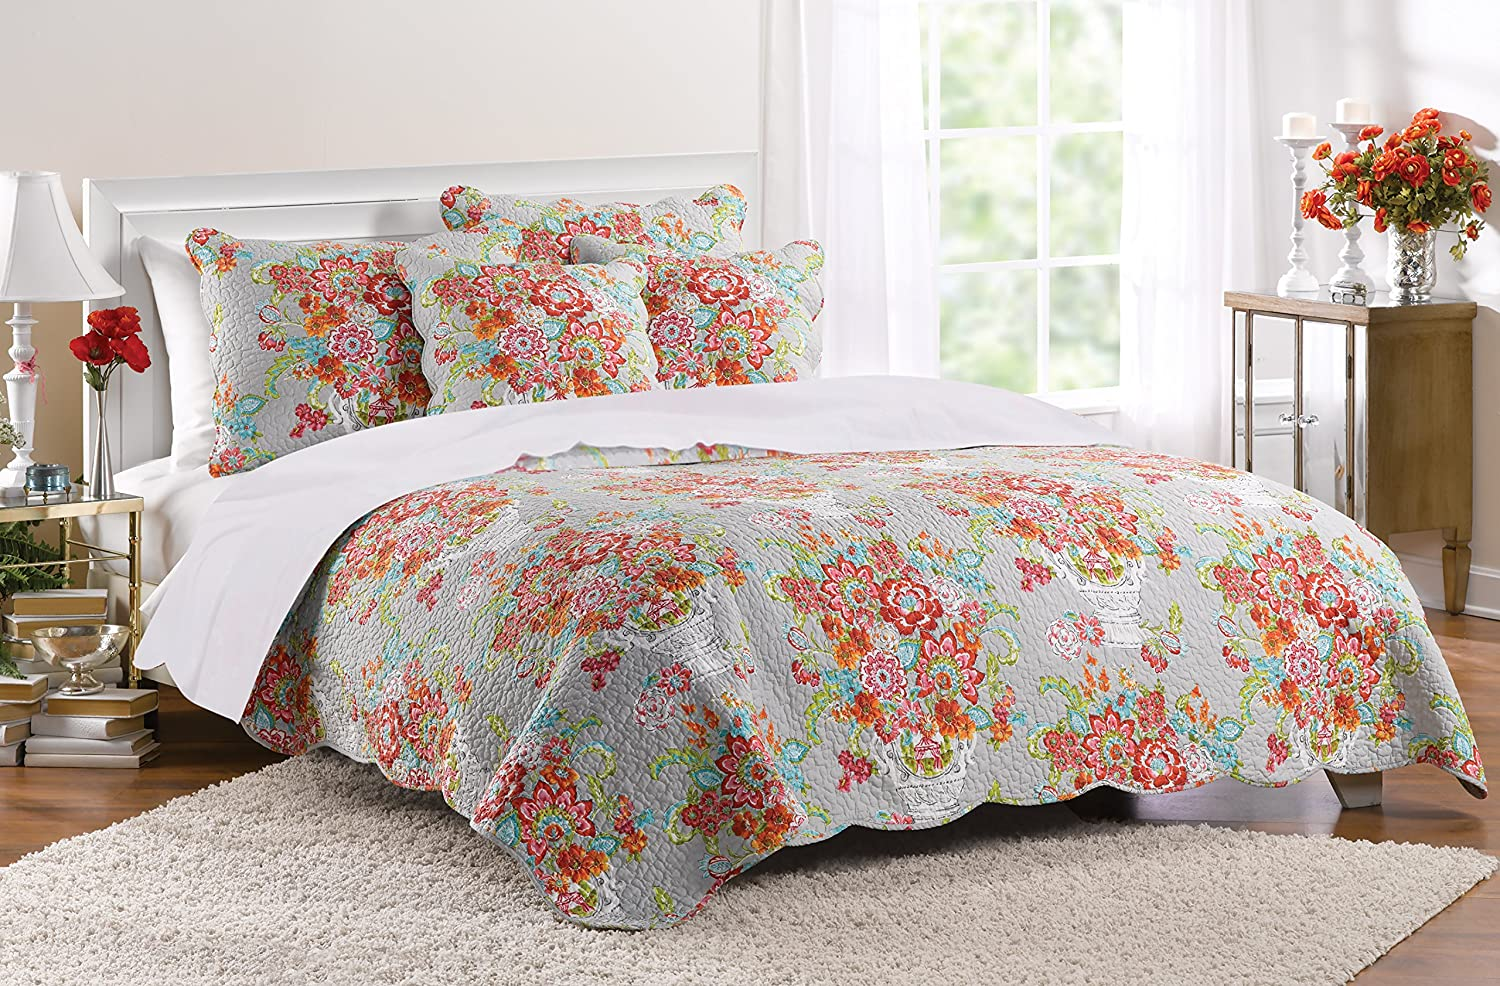 Greenland Home 3 Piece Brandi Quilt Set, Full/Queen, Multicolor